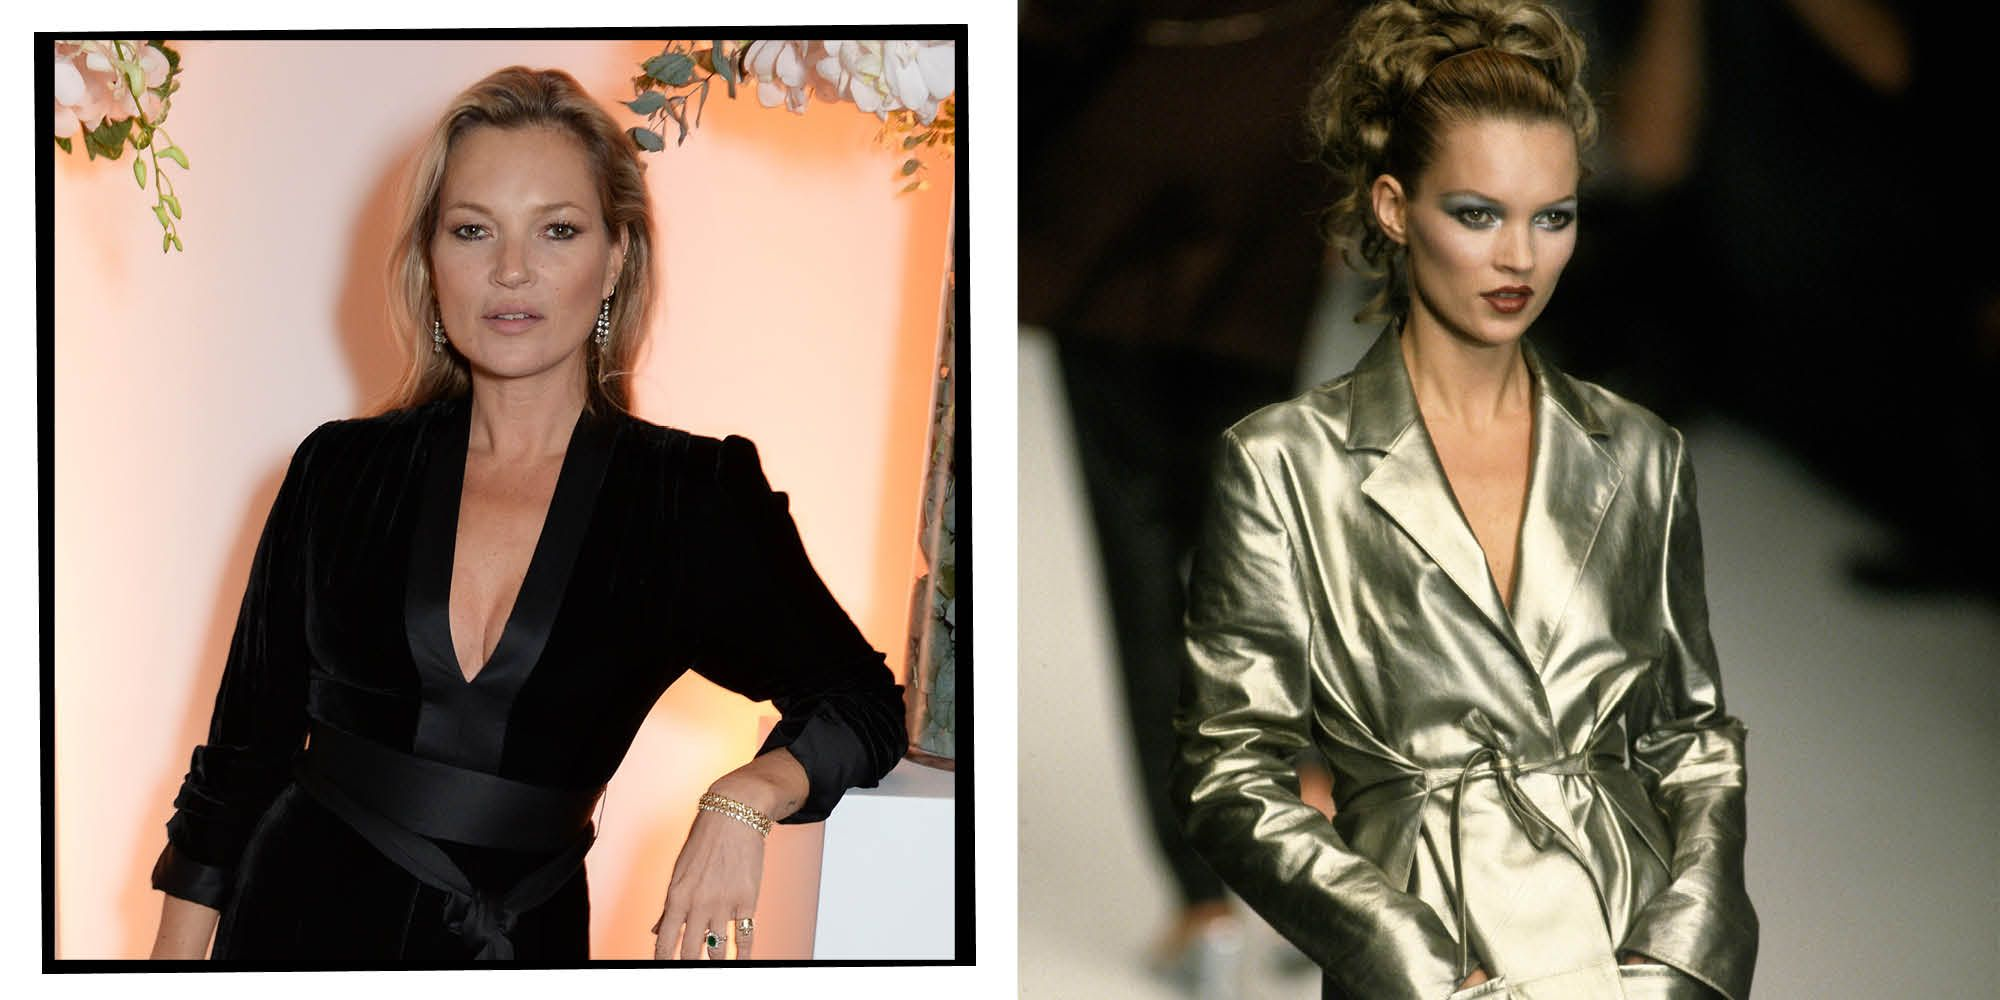 Kate moss might have taken some more drugs some bloke - 2019 year